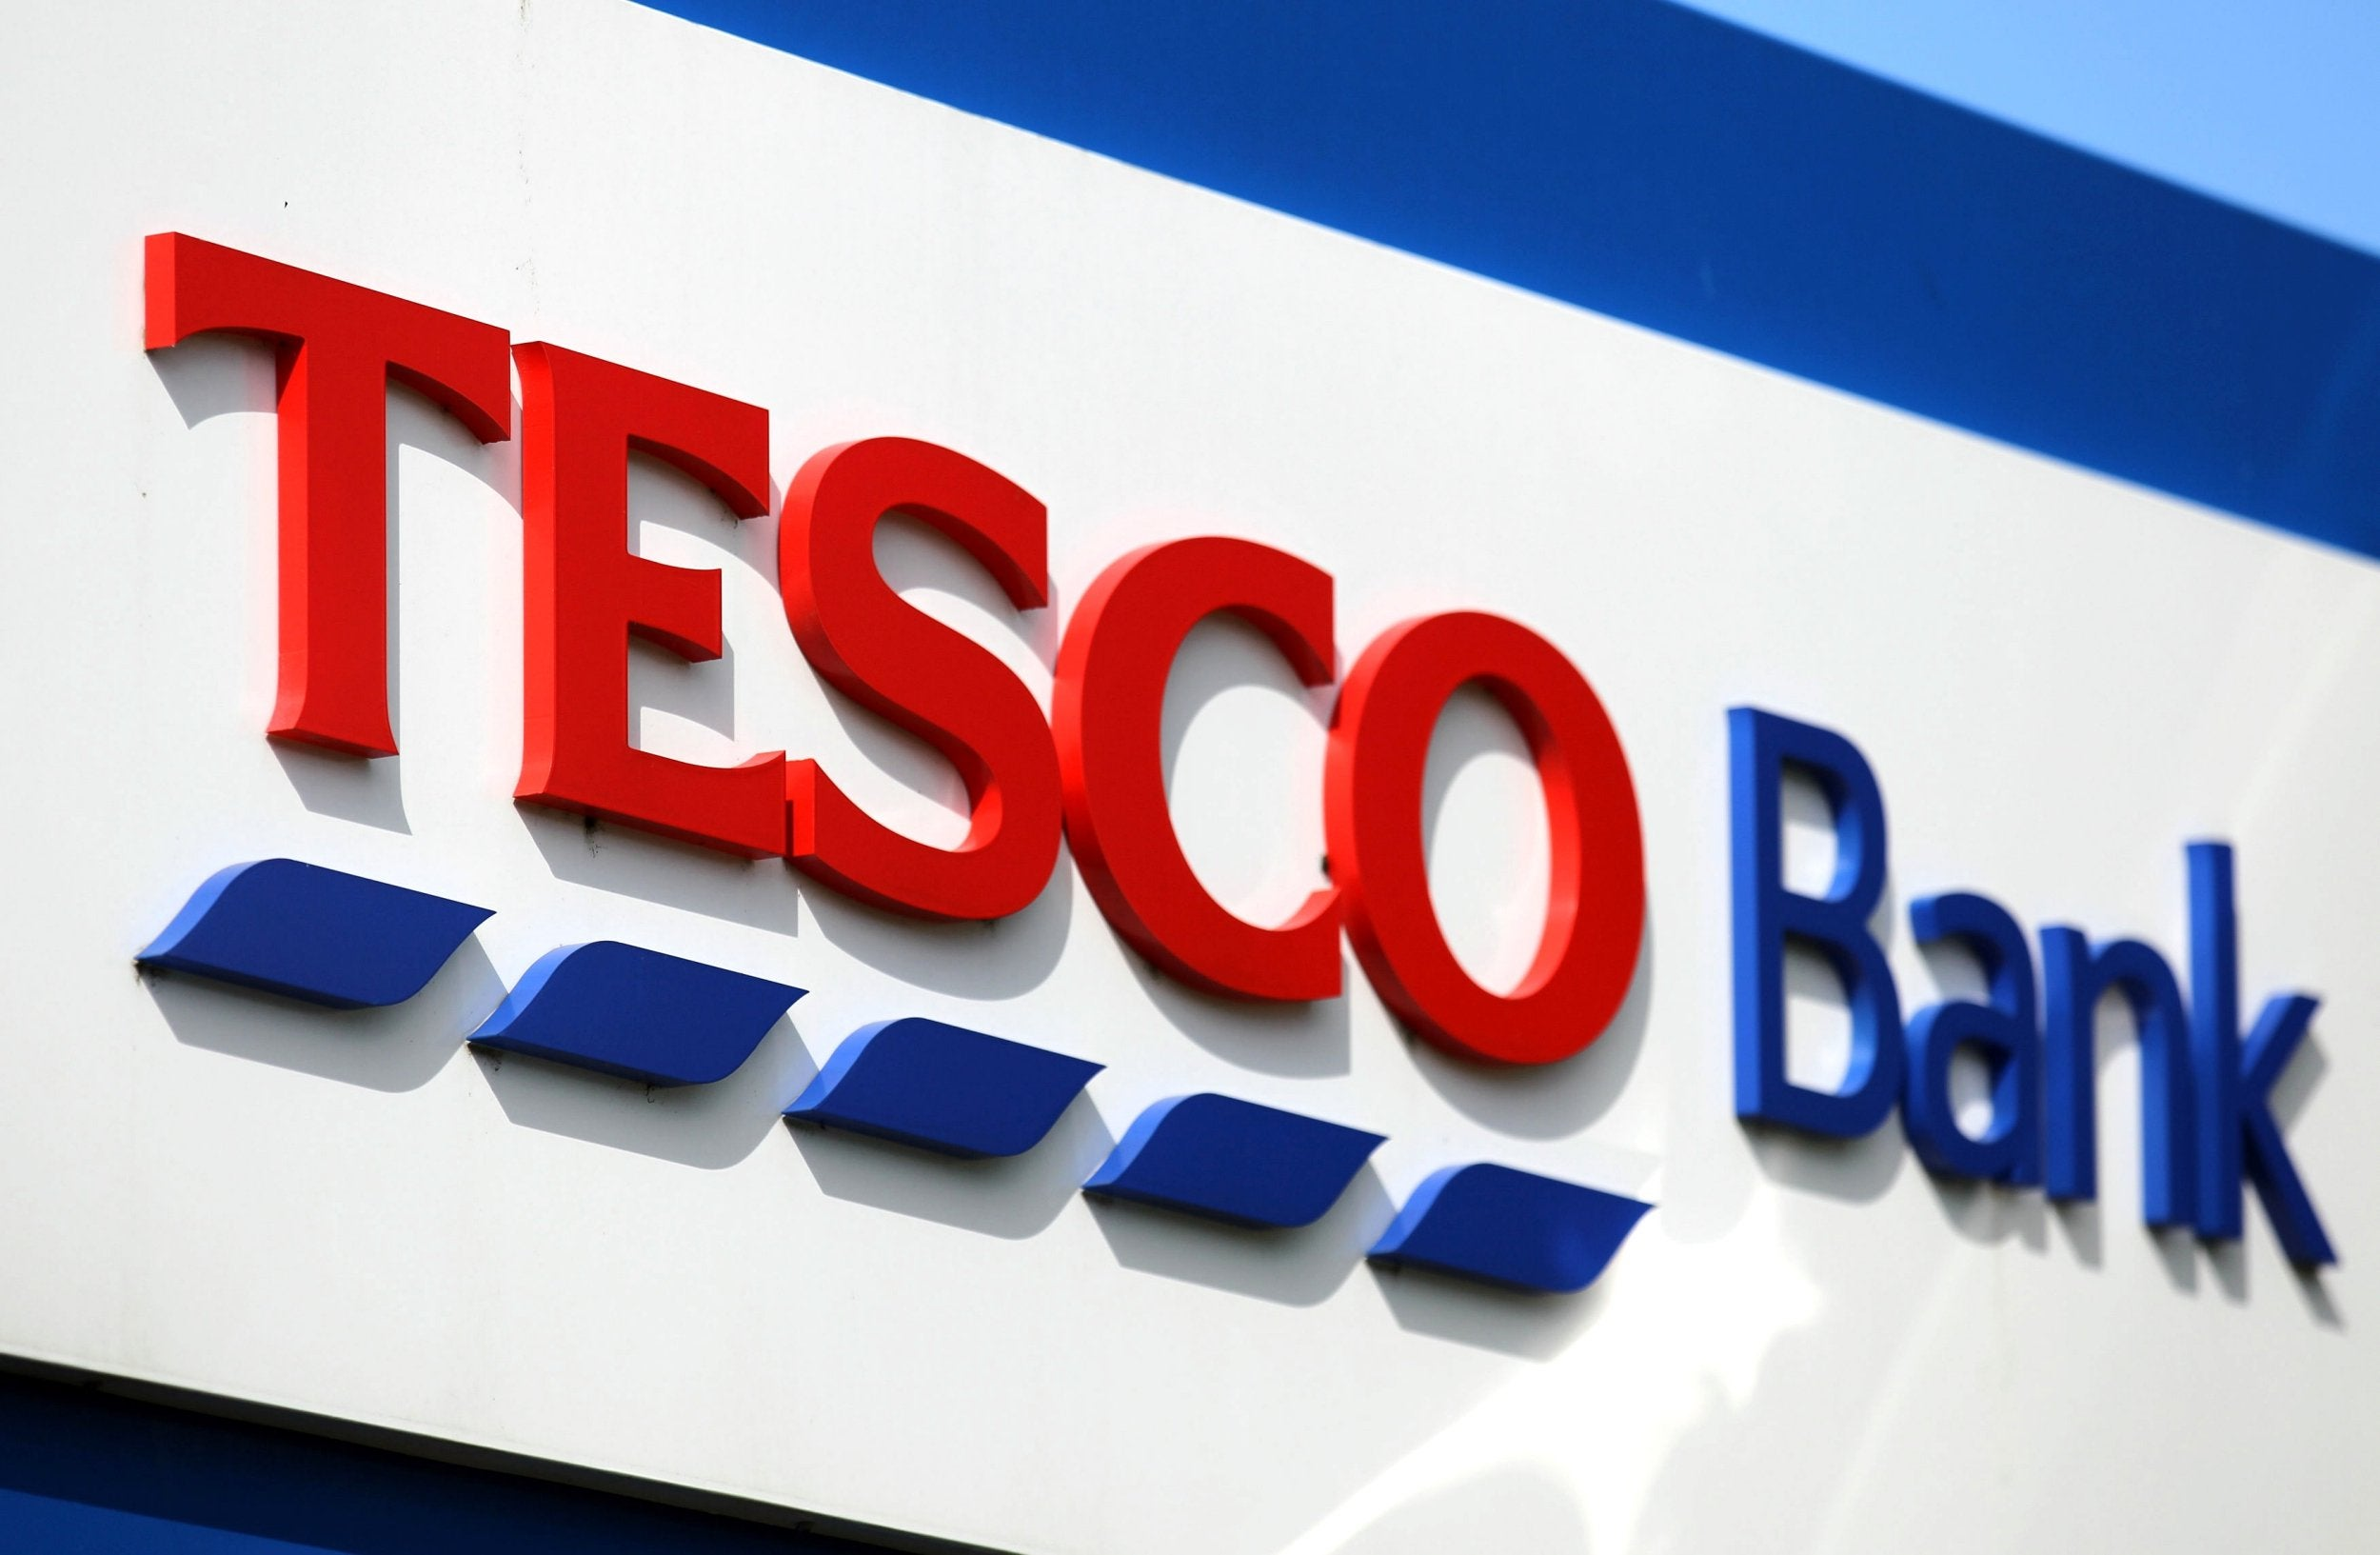 Tesco Bank Latest News Breaking Stories And Comment The Independent